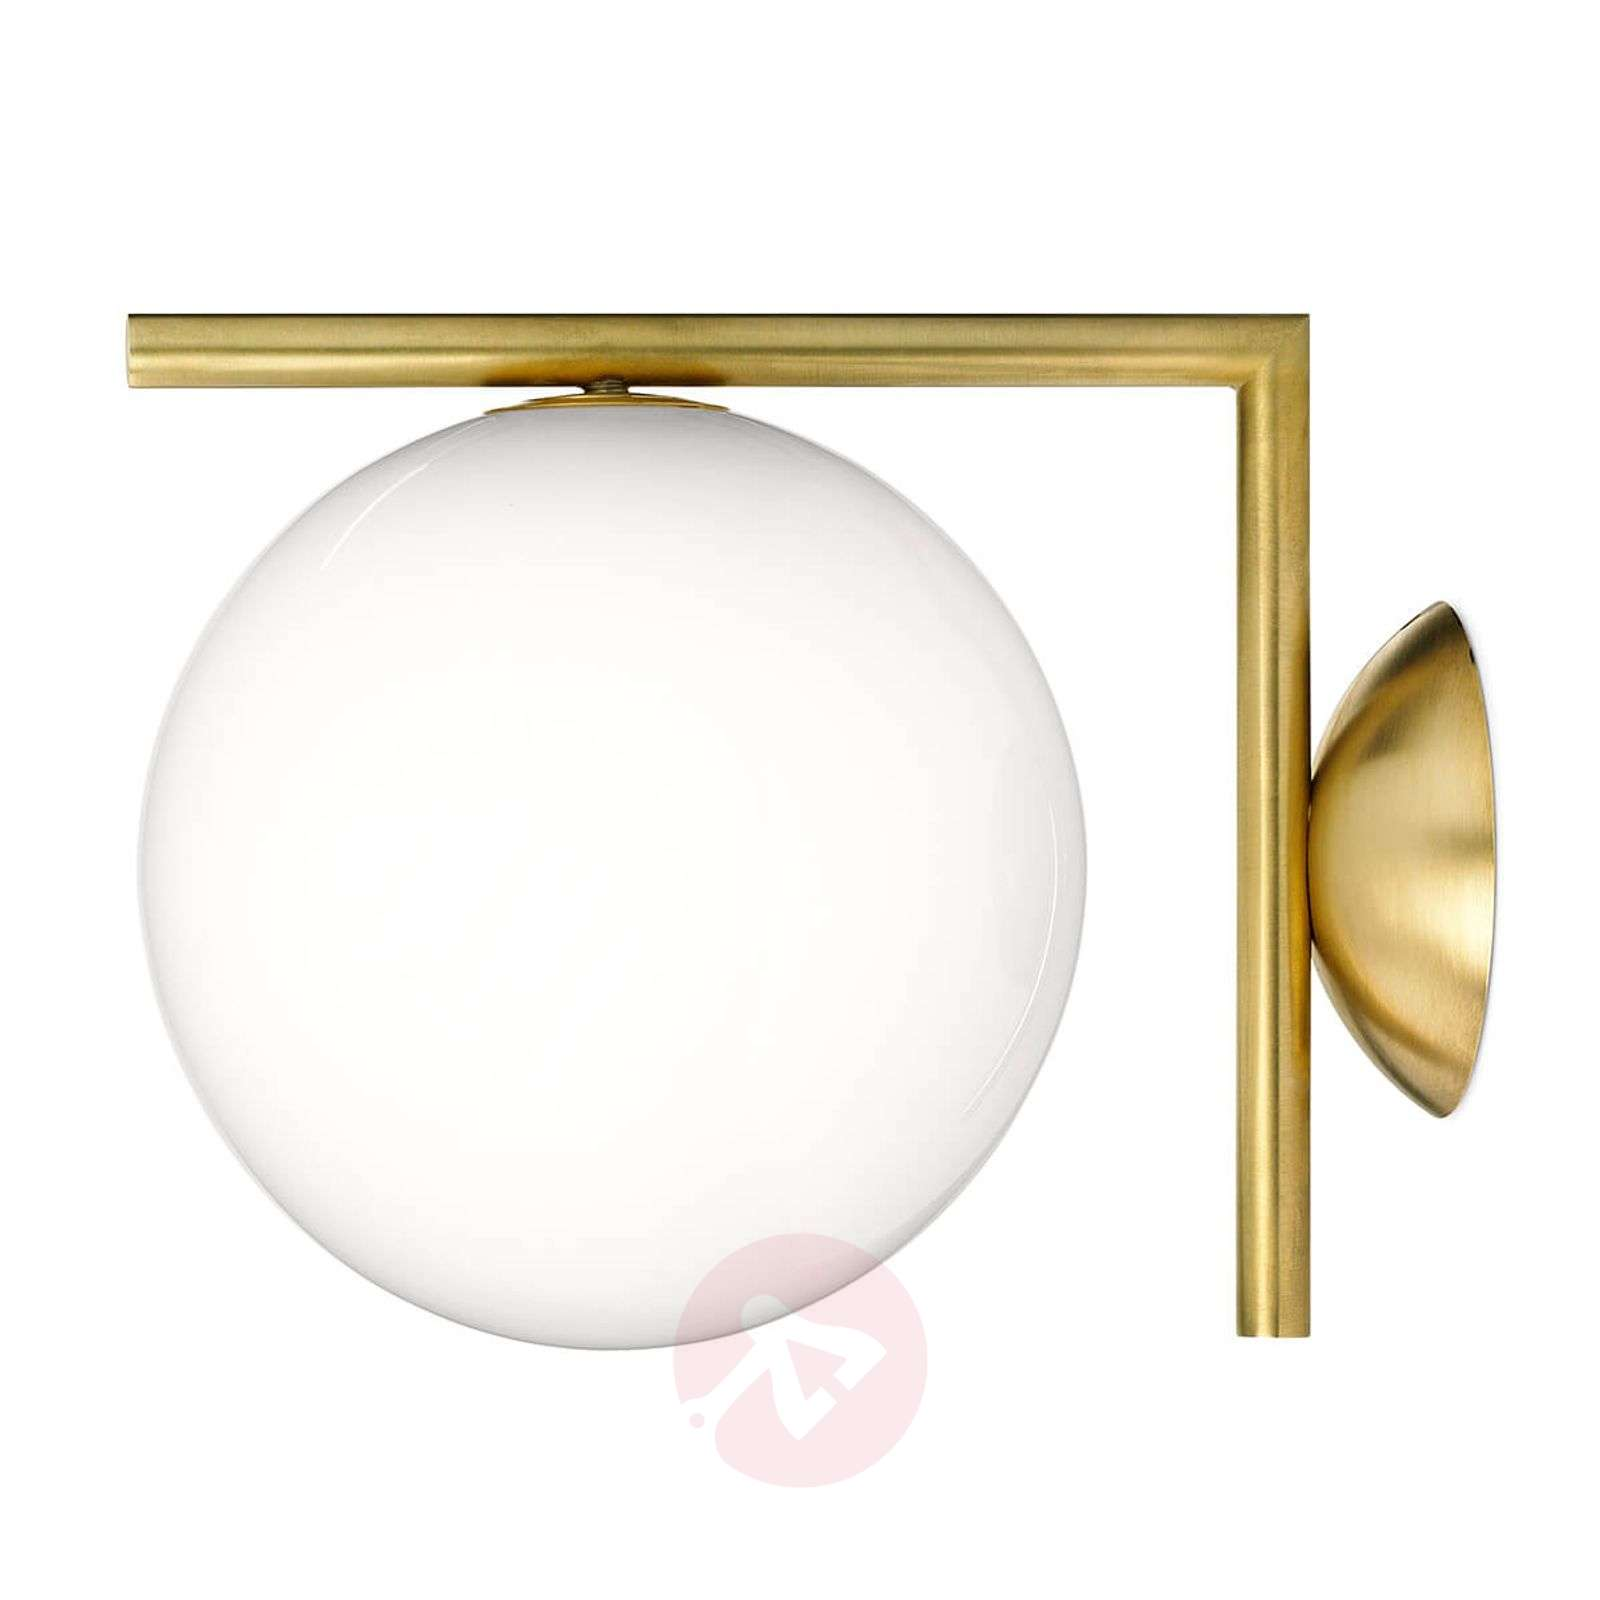 IC C/W1 Wall Lamp by FLOS, Brushed Brass-3510301-05